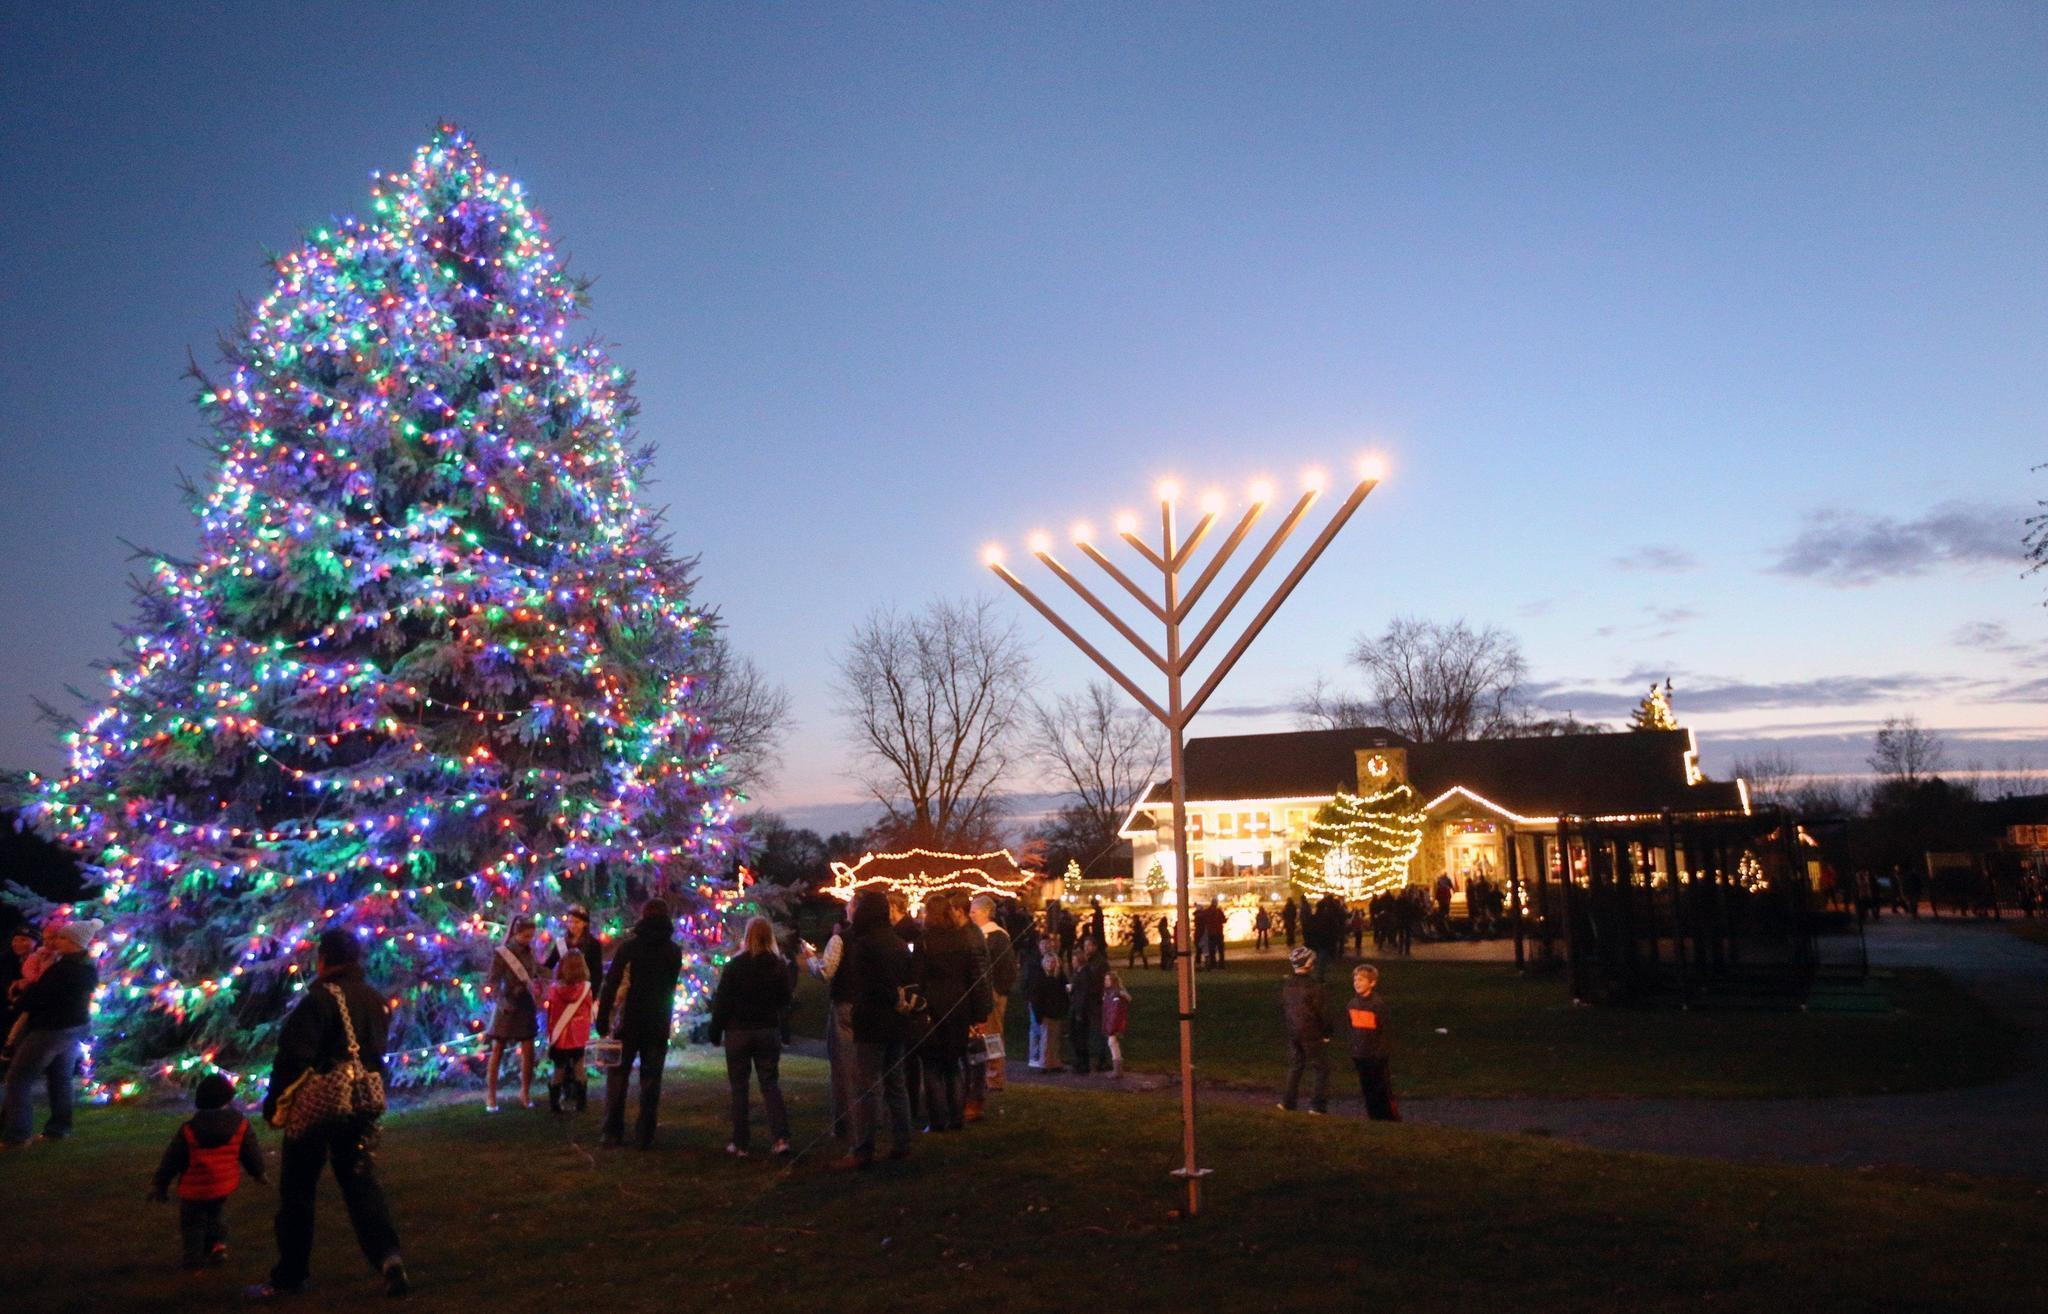 Mundelein Asks Residents: Should Village's Holiday Display Include Religious Symbols